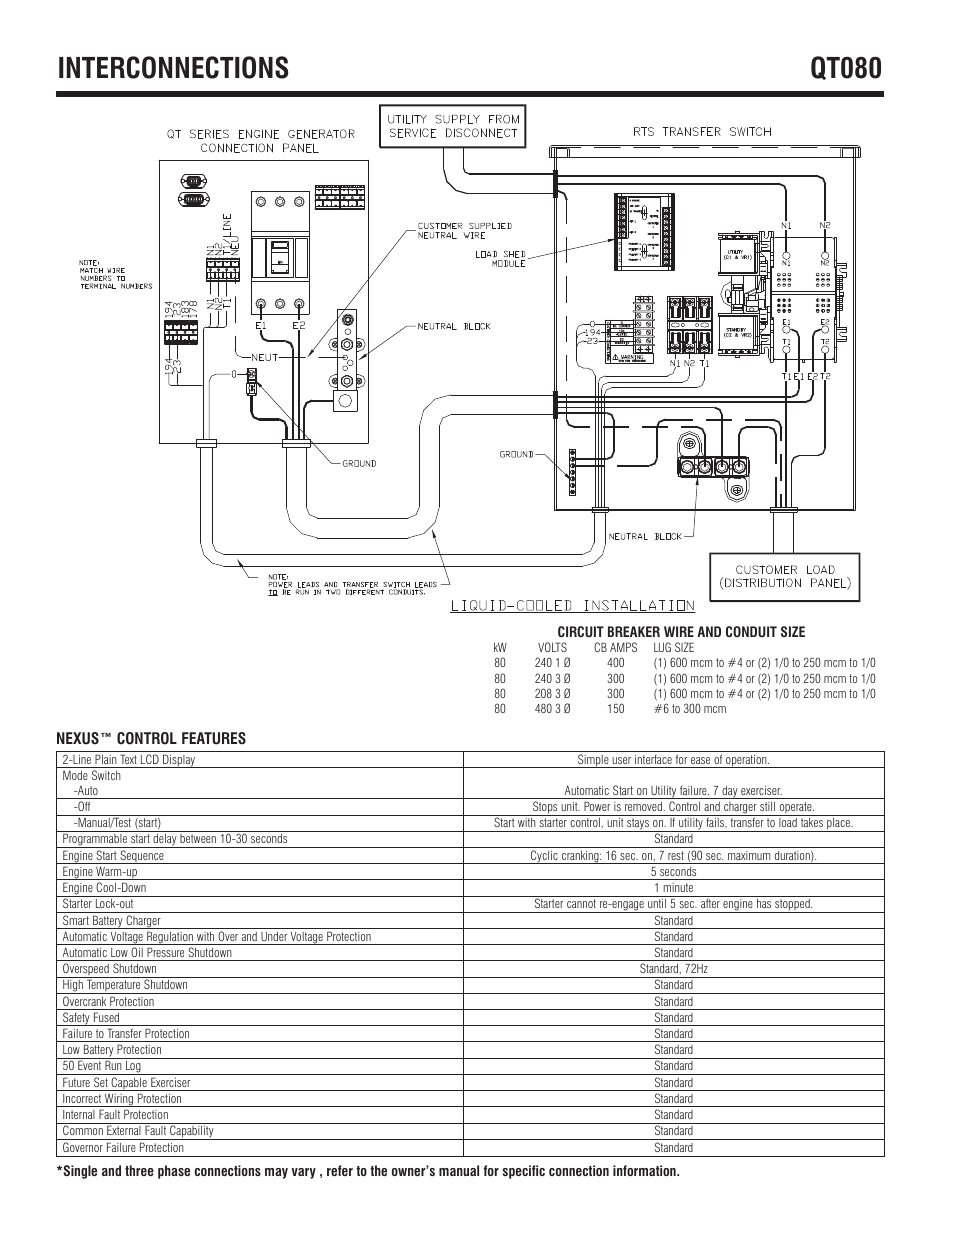 Interconnections Qt080 Generac User Manual Page 4 6 Nexus Smart Switch Wiring